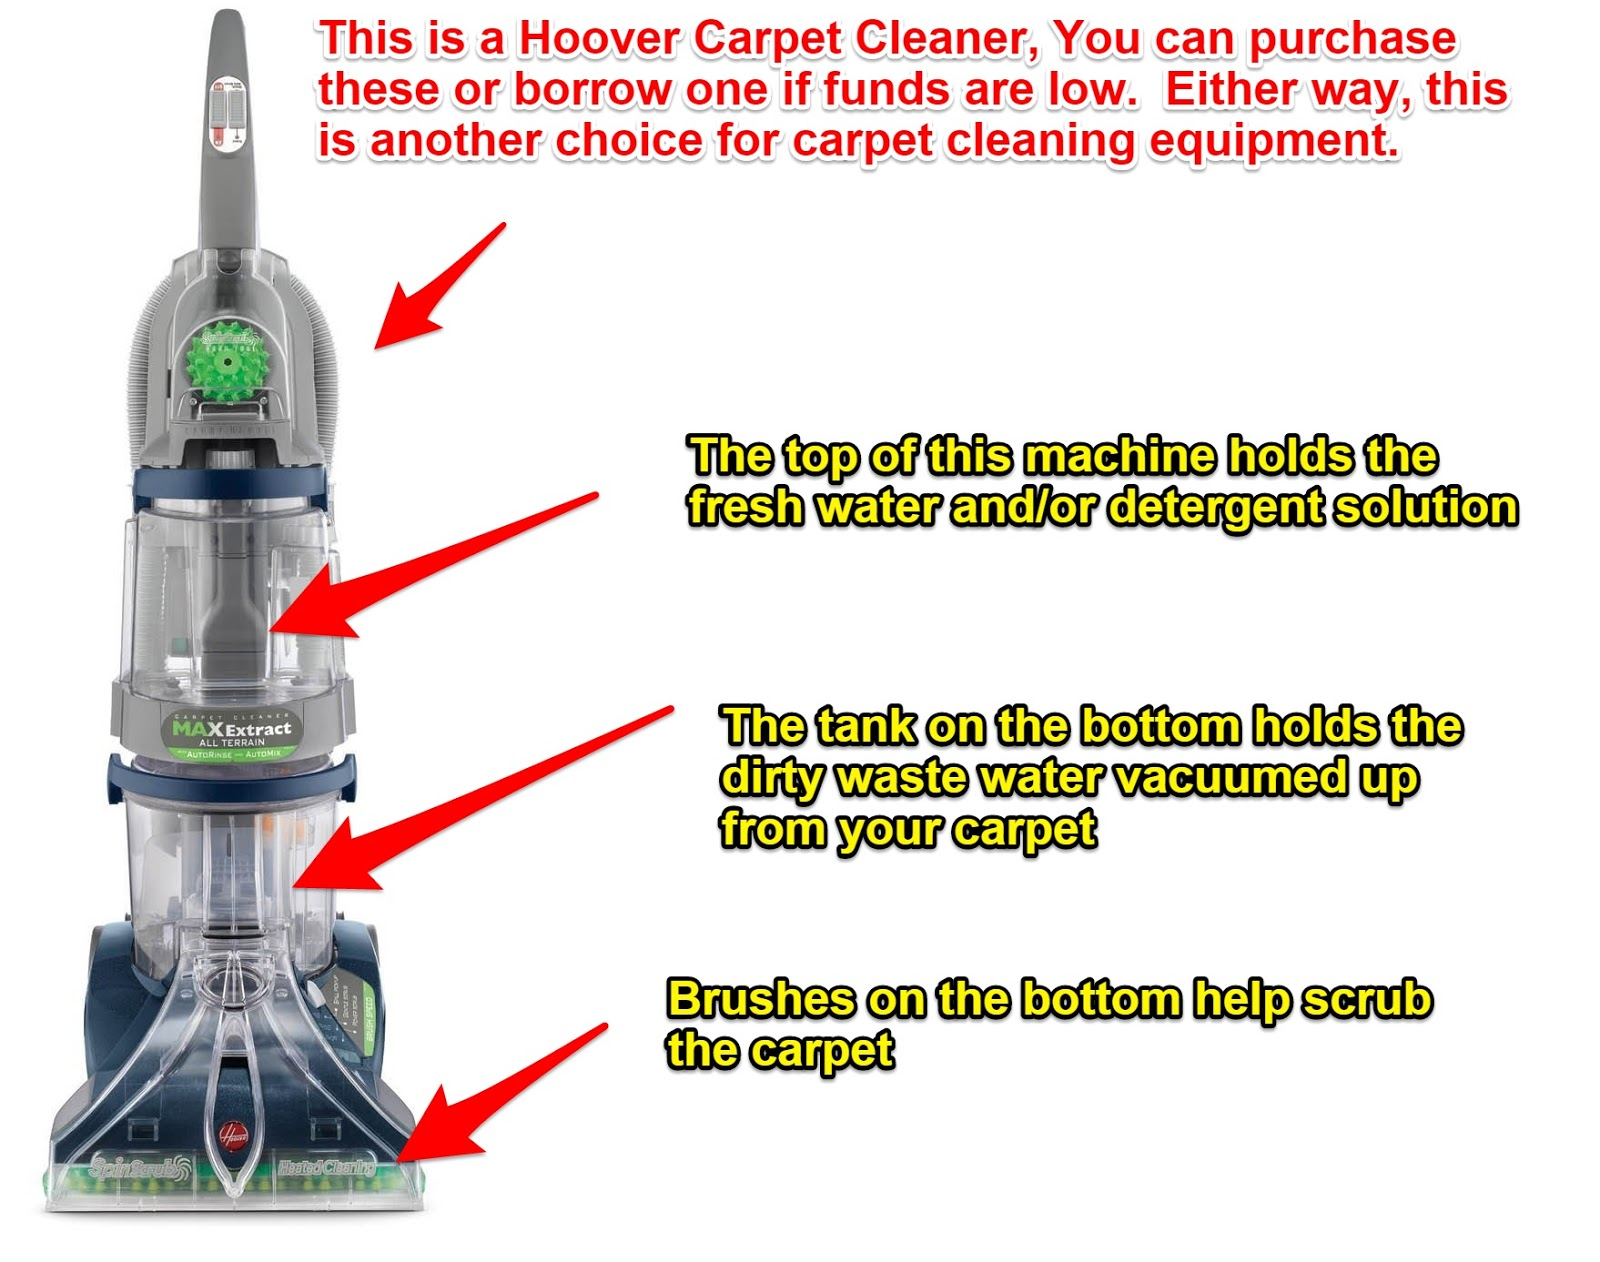 The mother of all diy carpet cleaning guides or how to clean carpet hoover max extract carpet cleaning machine at this amazon link solutioingenieria Gallery